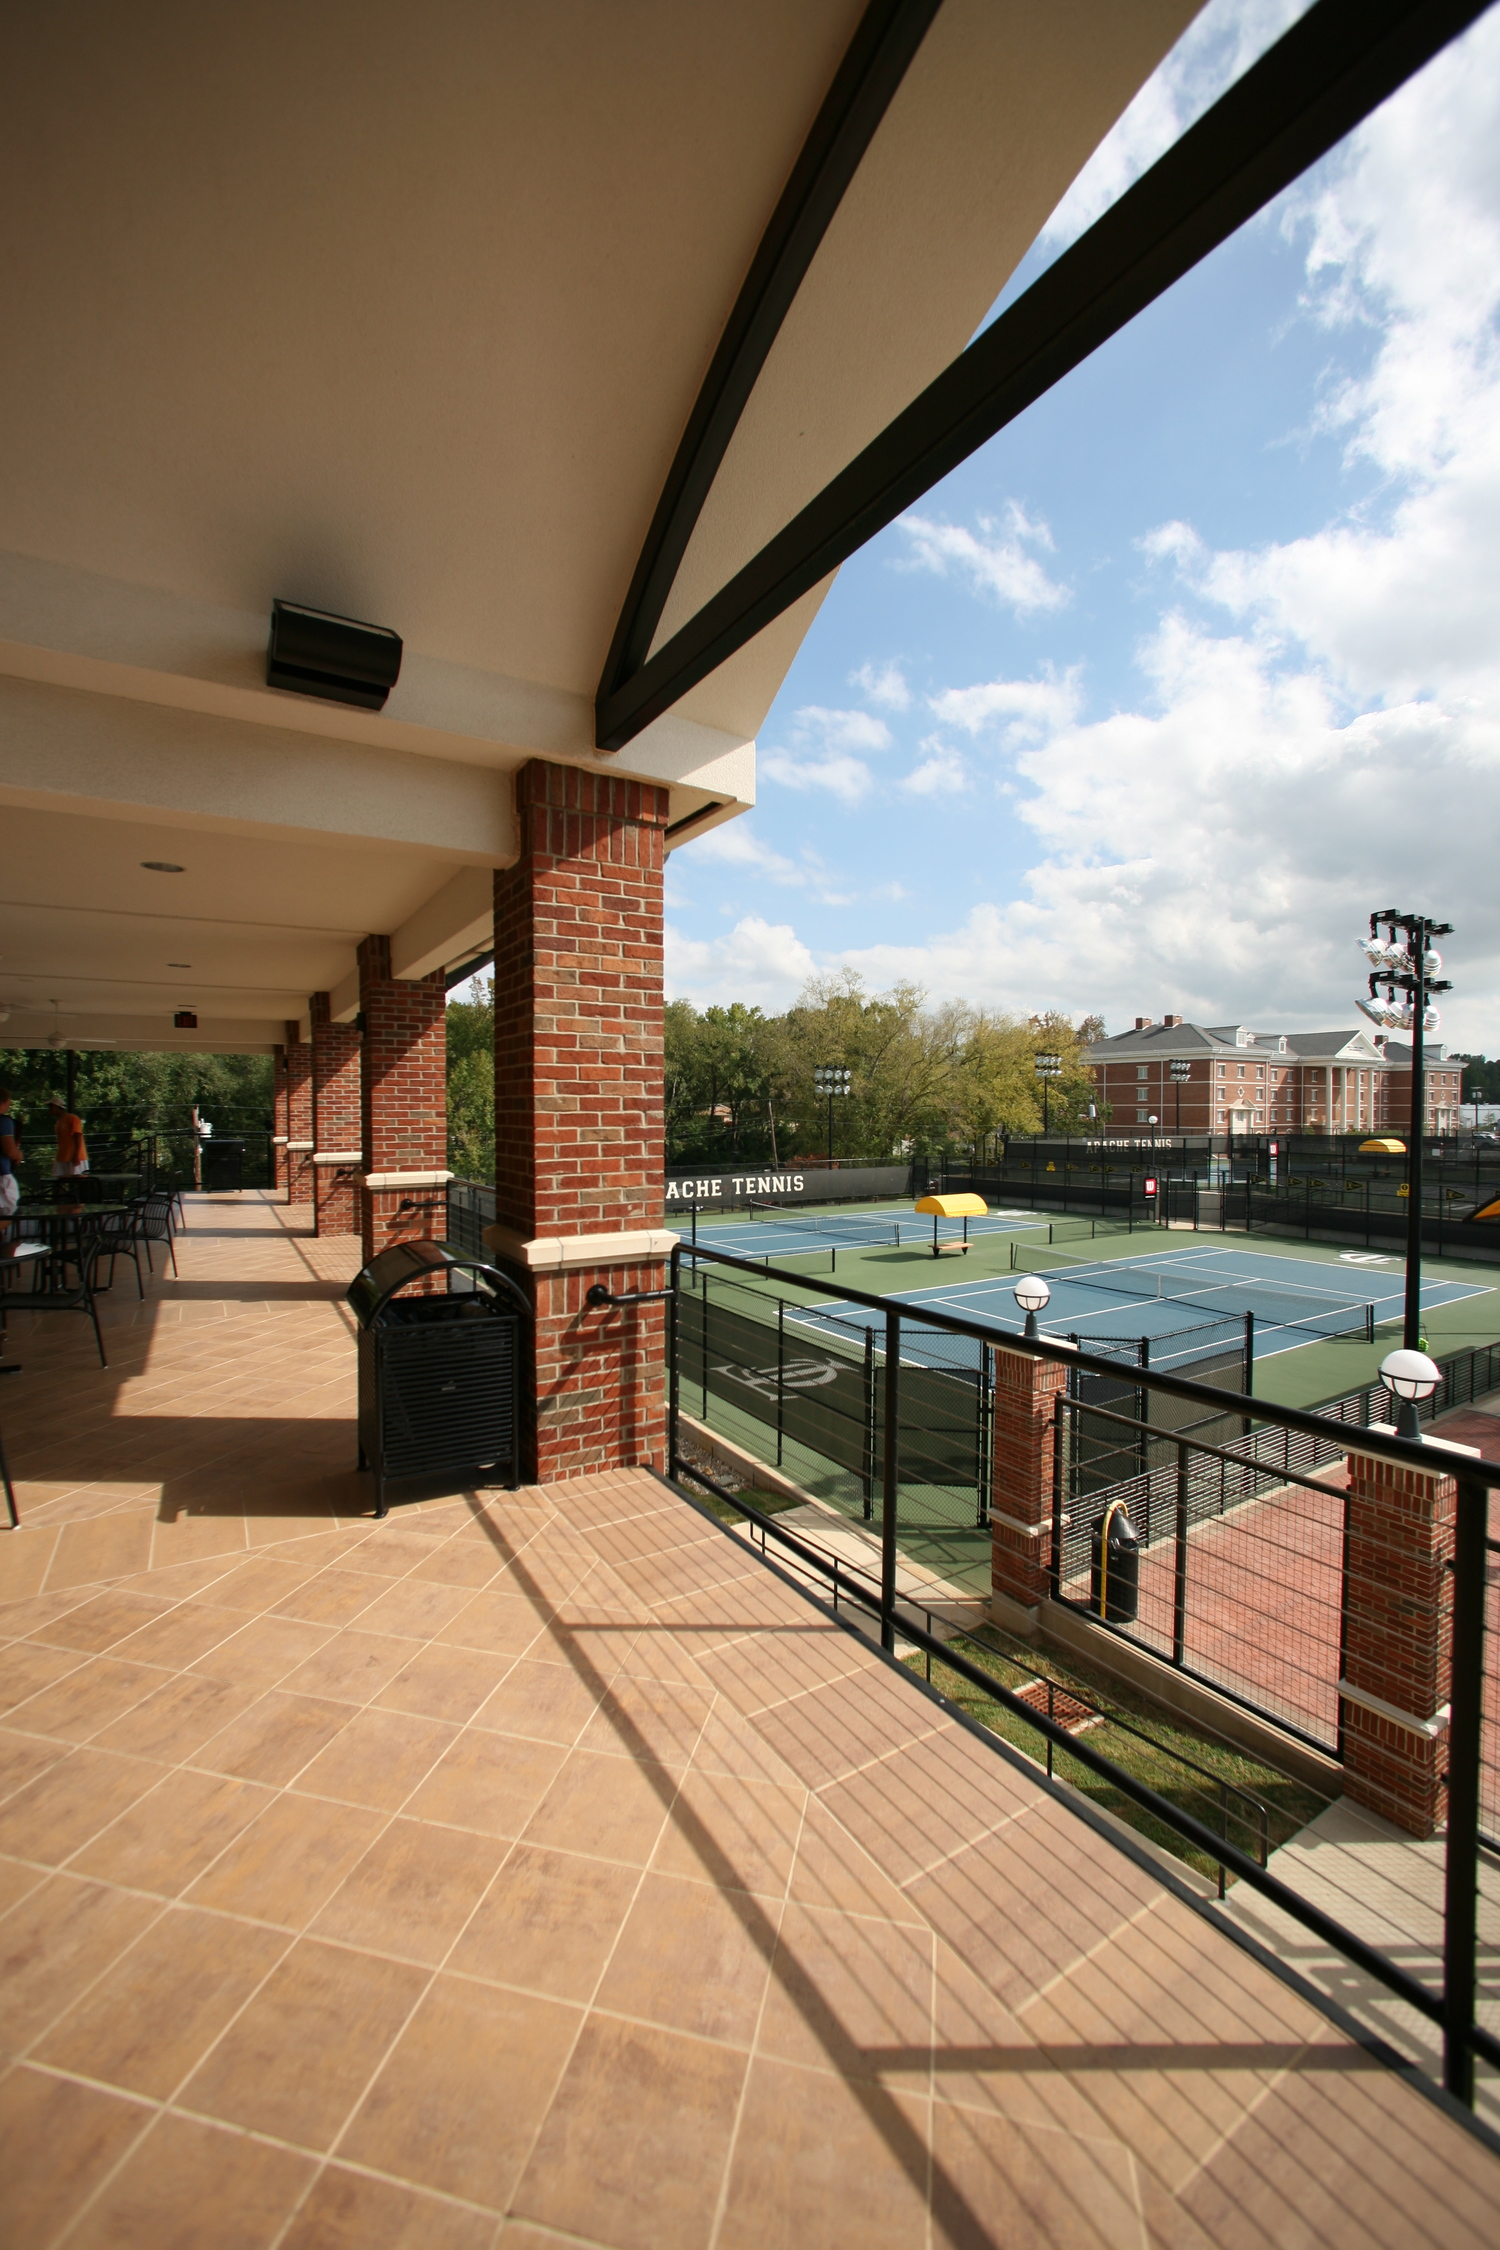 tjc tennis facilities architect - sports facilities architect - design build recreation architect - butler architectural group